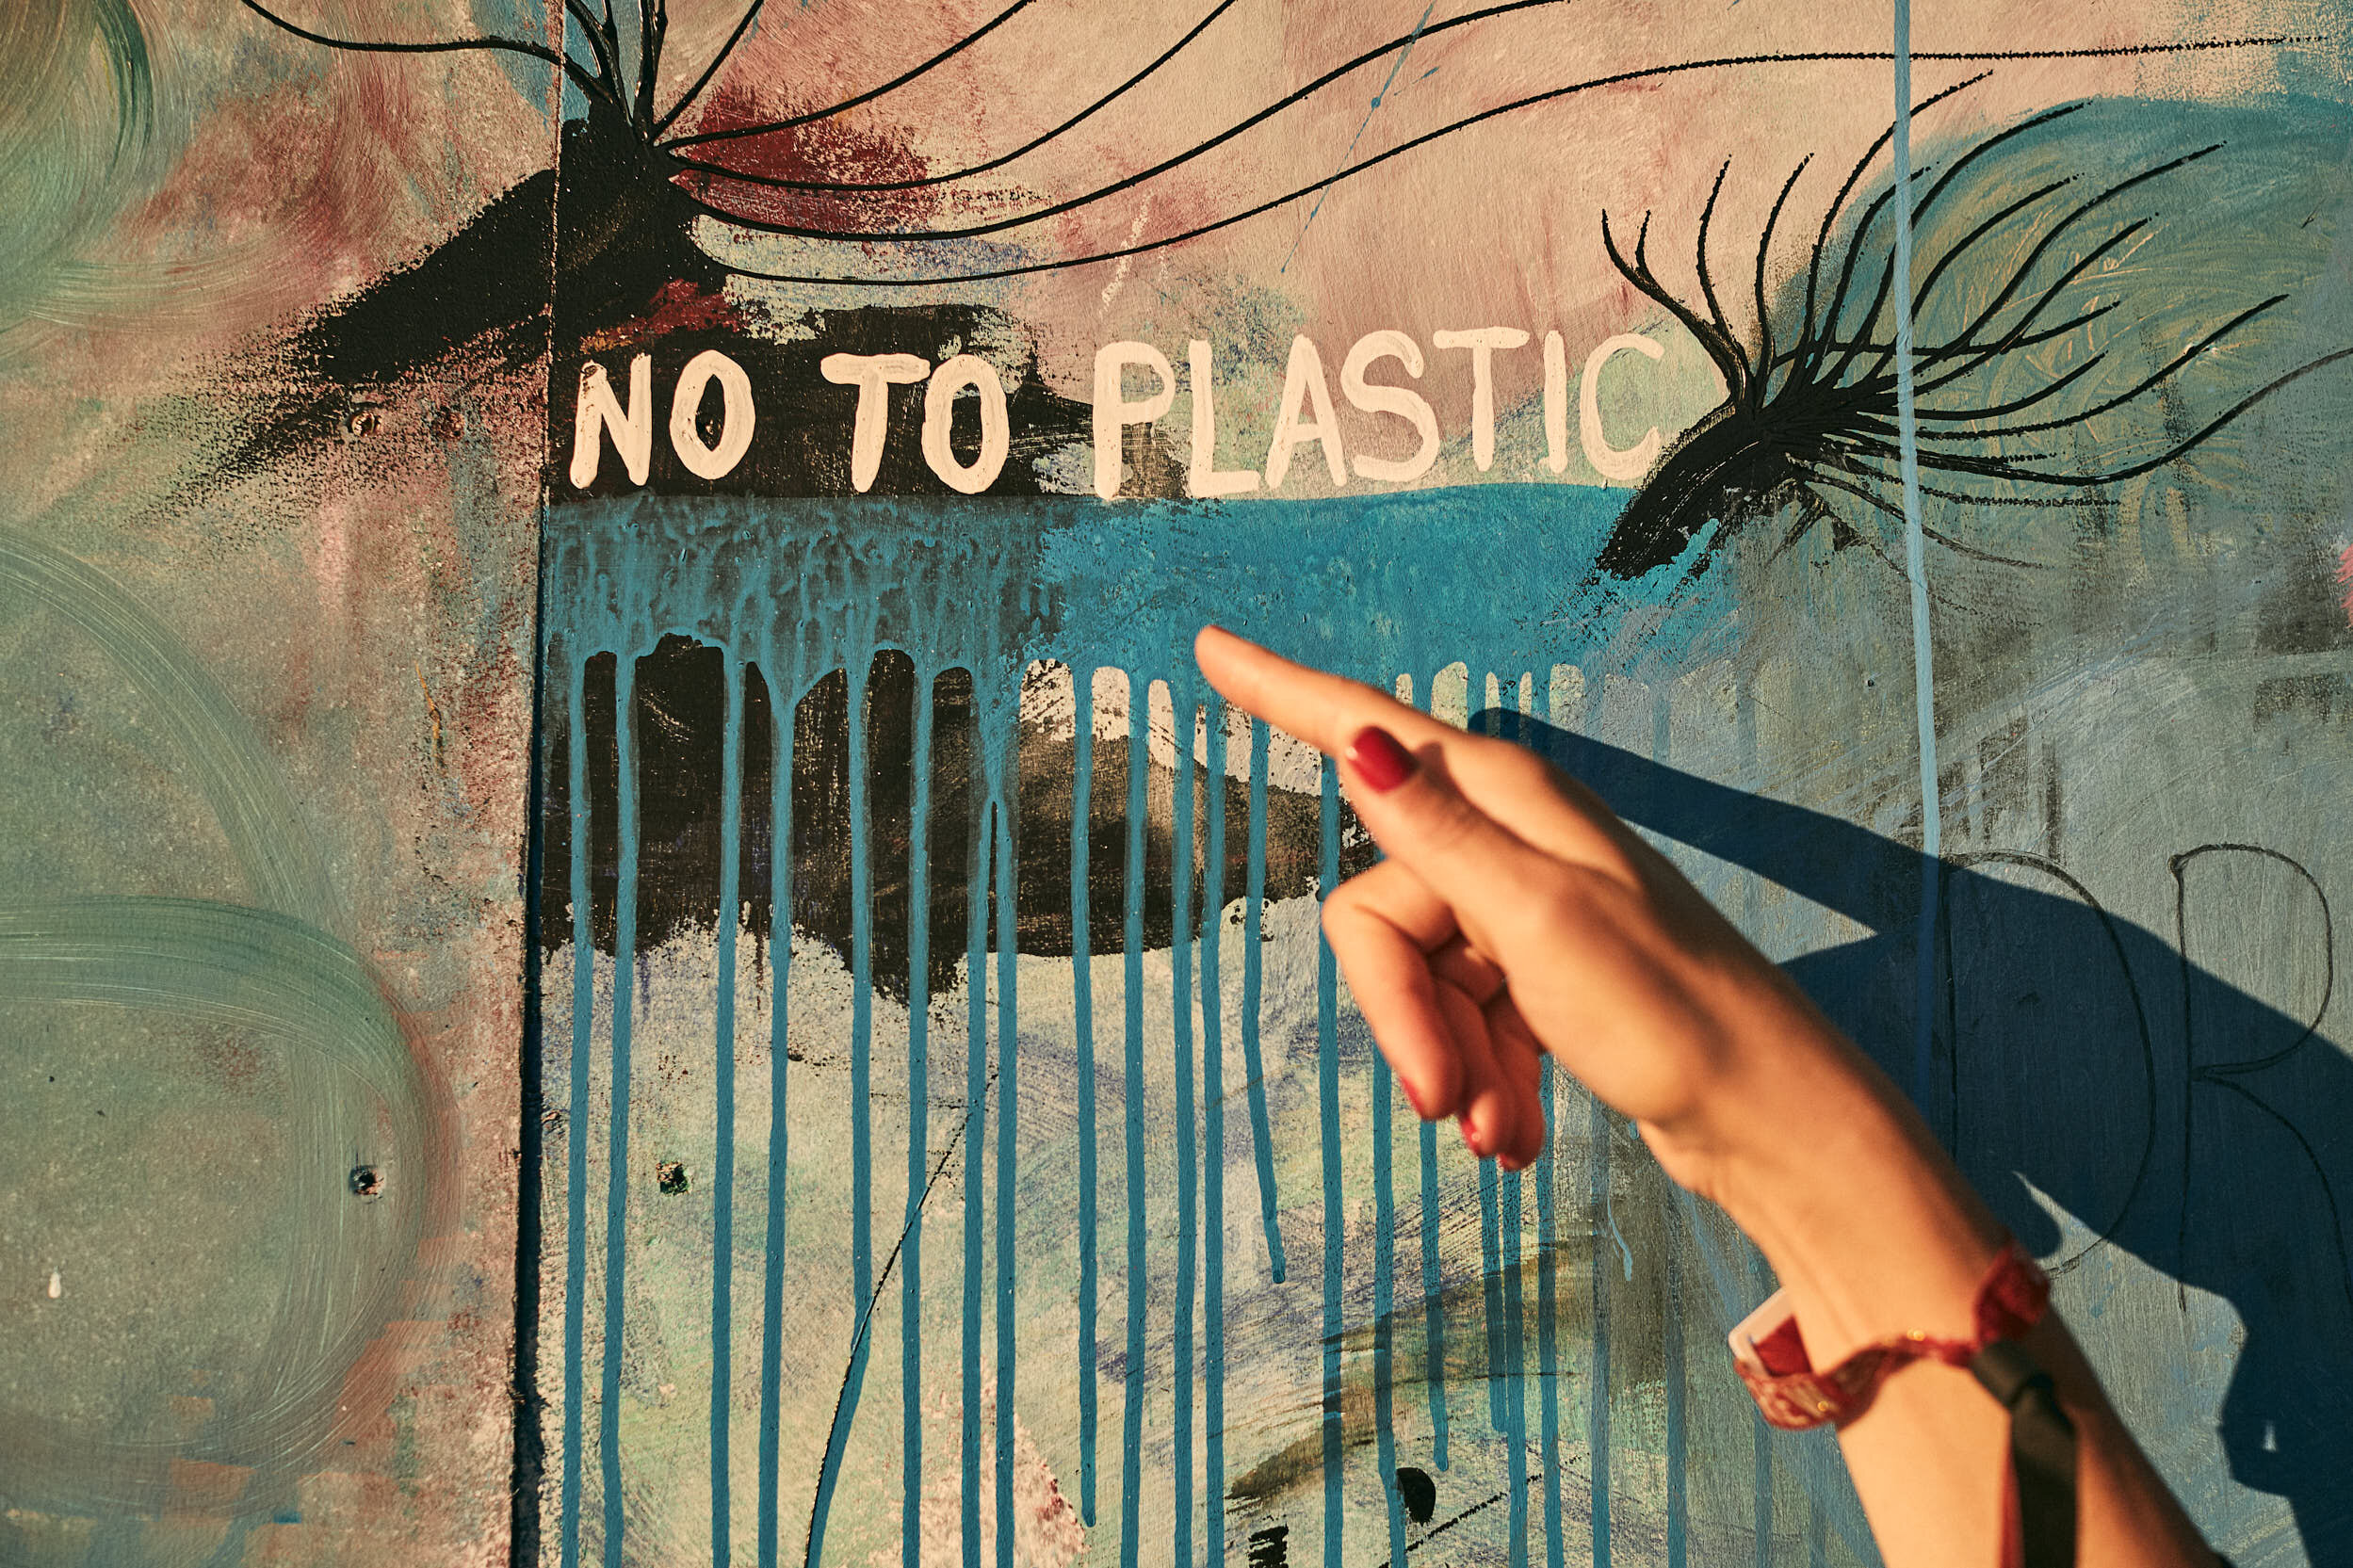 The average time a plastic bag is used is up to 12 minutes… and it can take up to a thousand years to decompose.